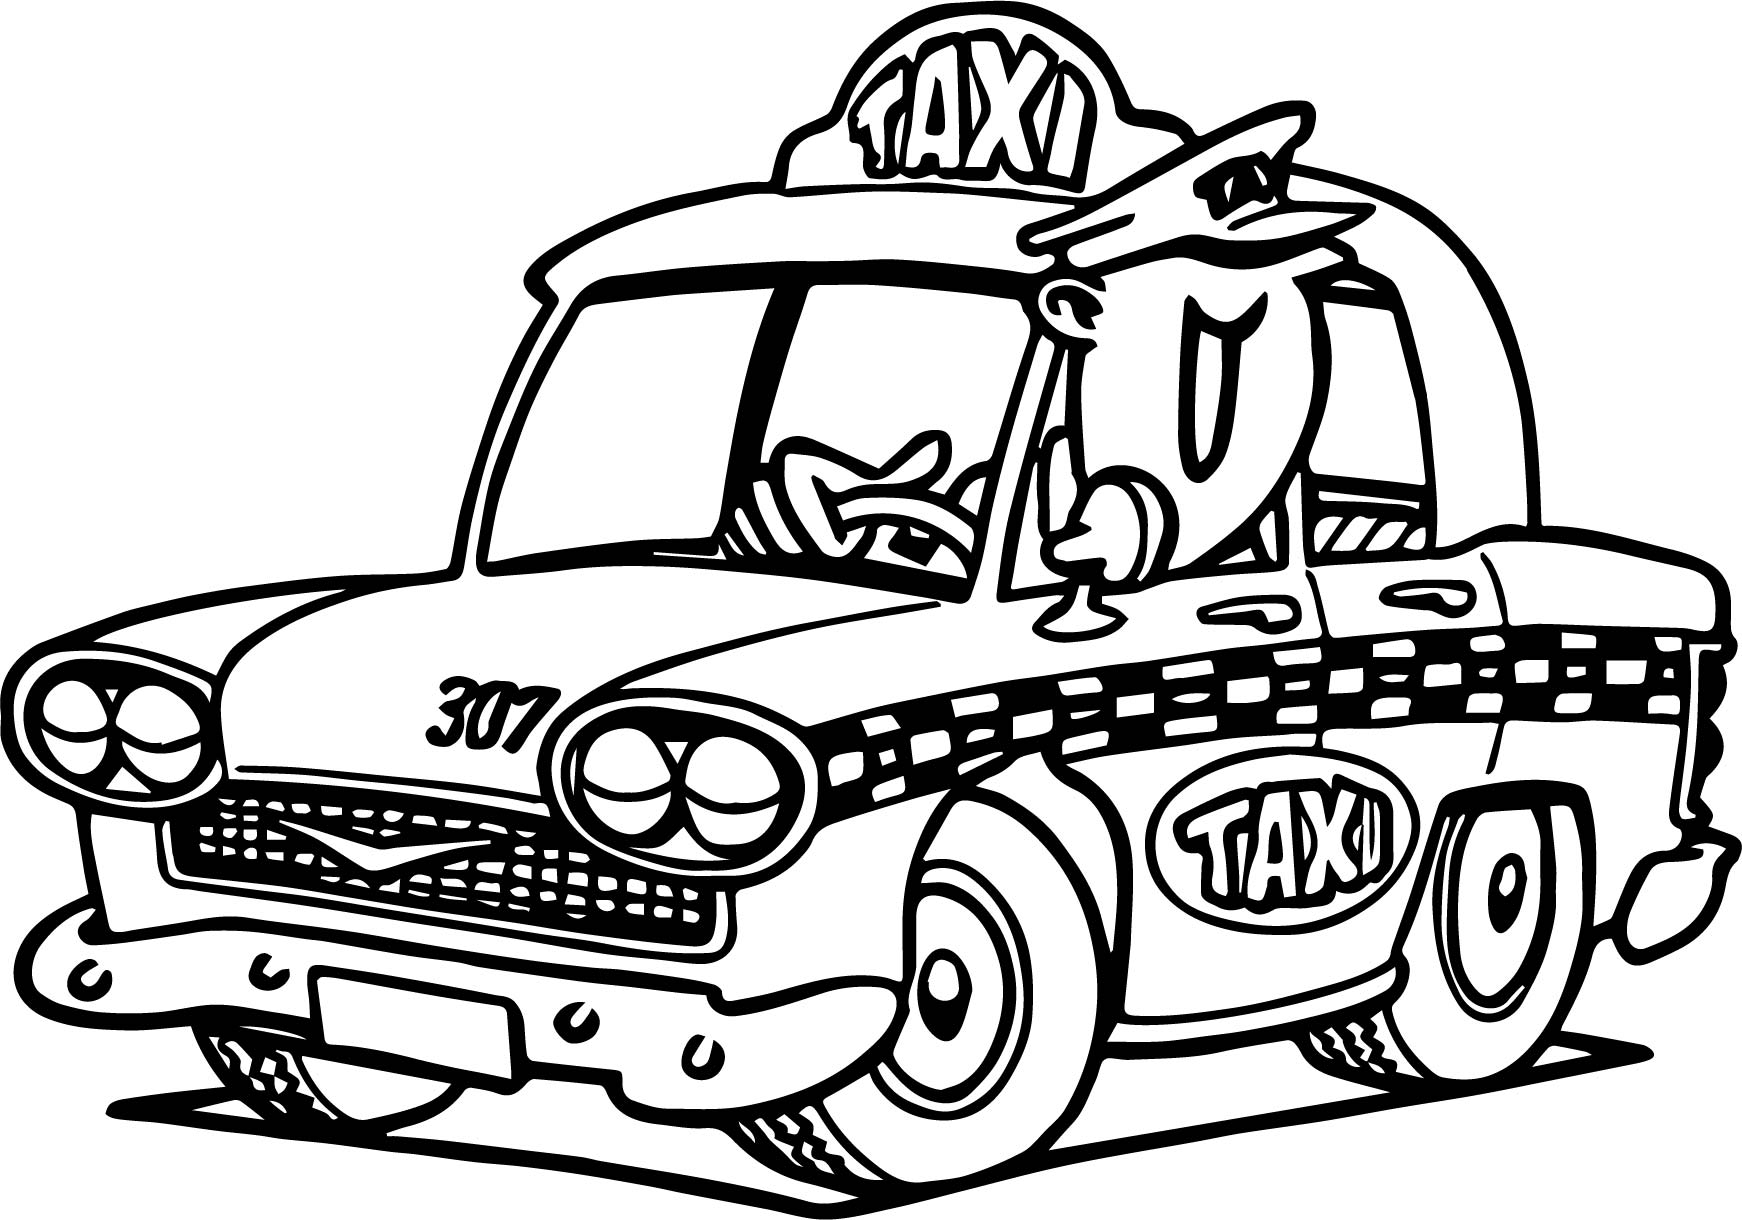 Driving coloring pages ~ Car Drawing Cartoon at GetDrawings.com | Free for personal ...